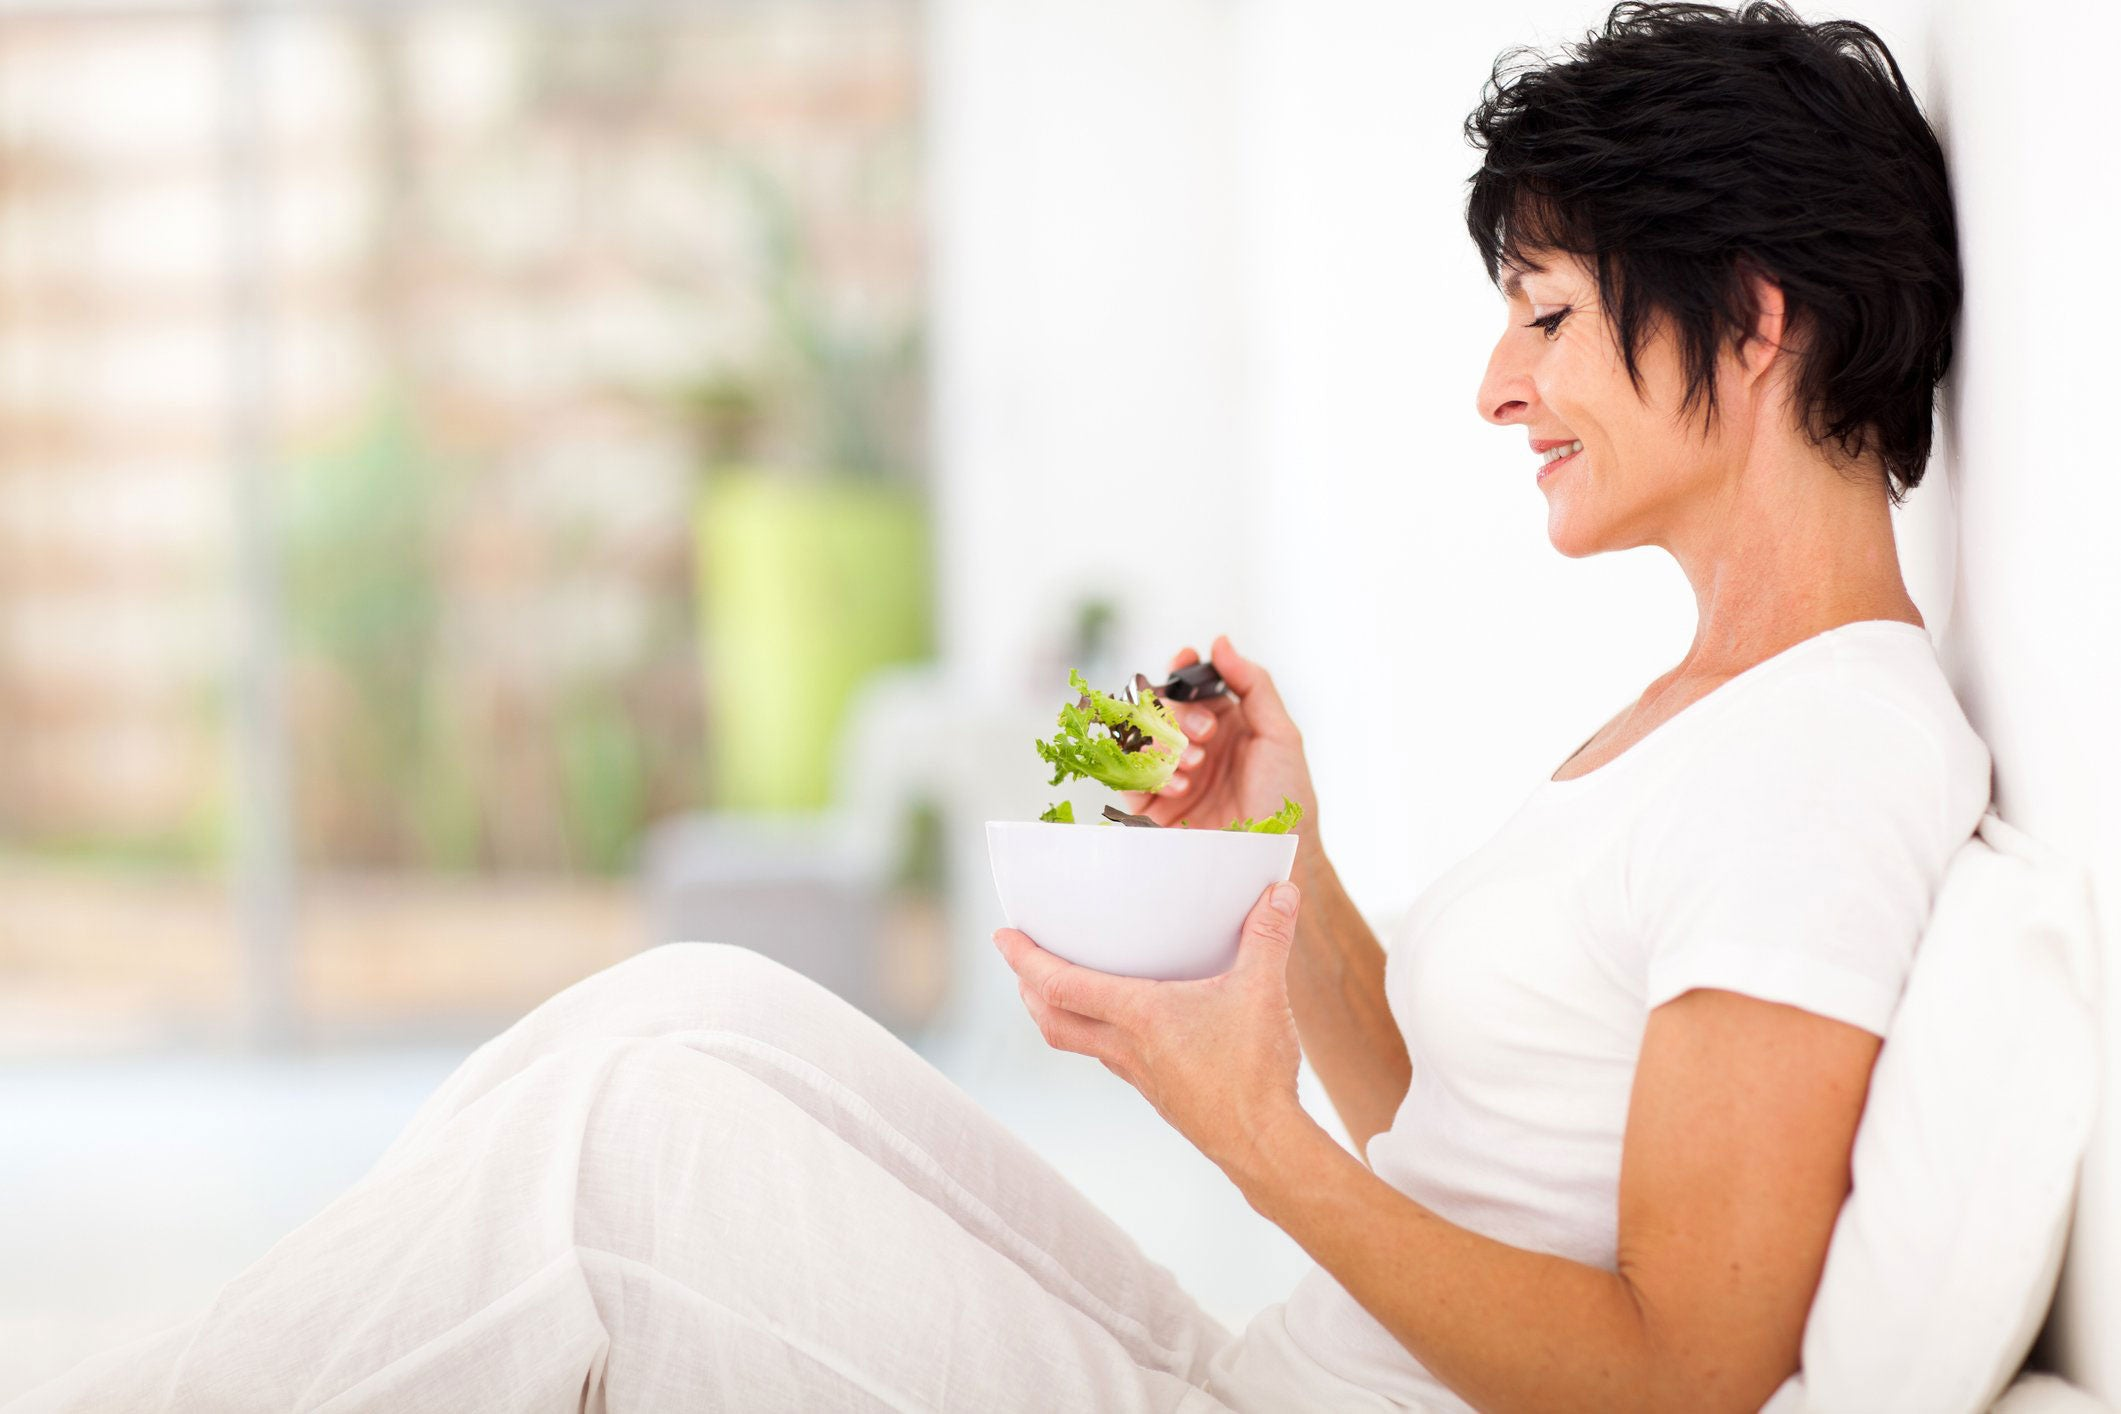 woman dressed in white sitting eating a bowl of salad